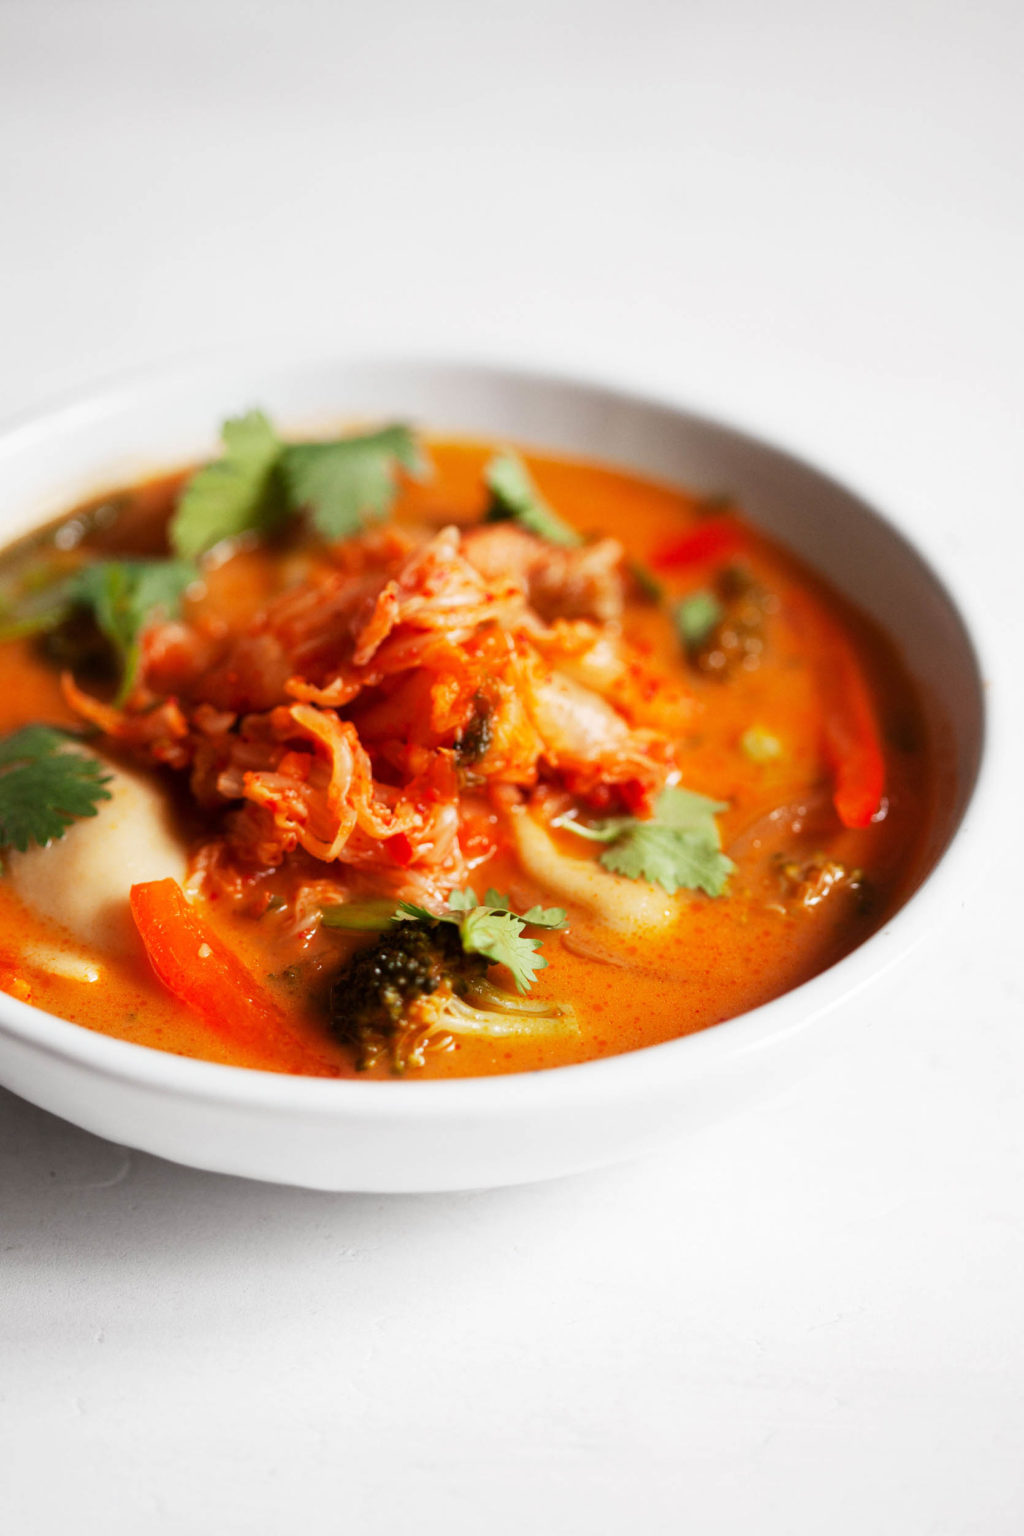 An angled photograph of a vegan red curry soup, made with plump, plant-based dumplings and garnished with a mound of kimchi.